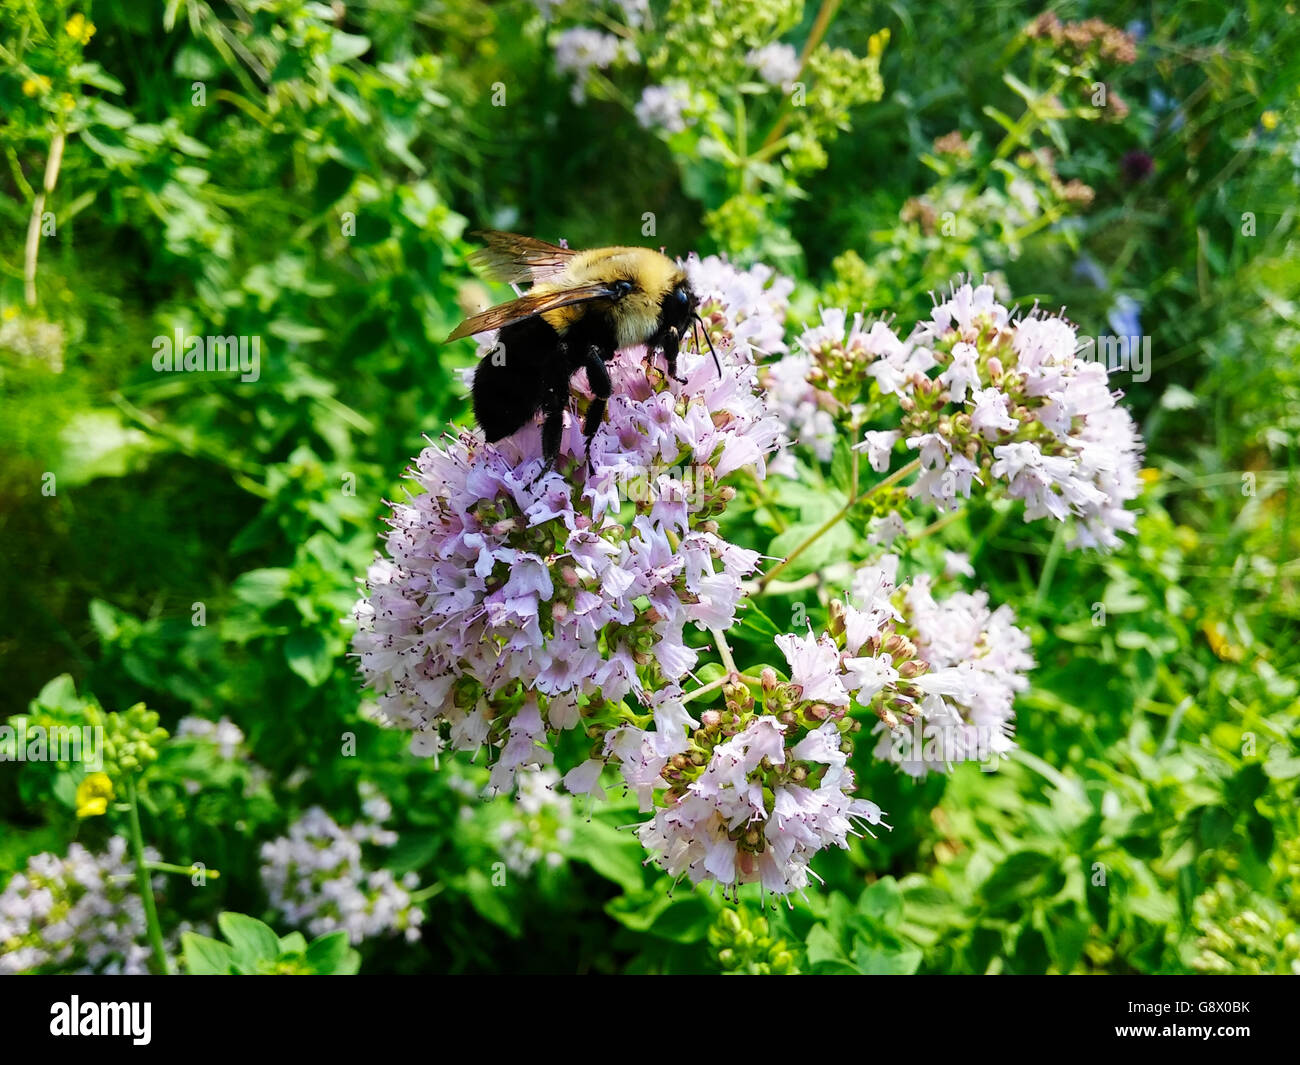 A bee pollinates an oregano plant which has been left to flower in a community garden in New York on Friday, June - Stock Image